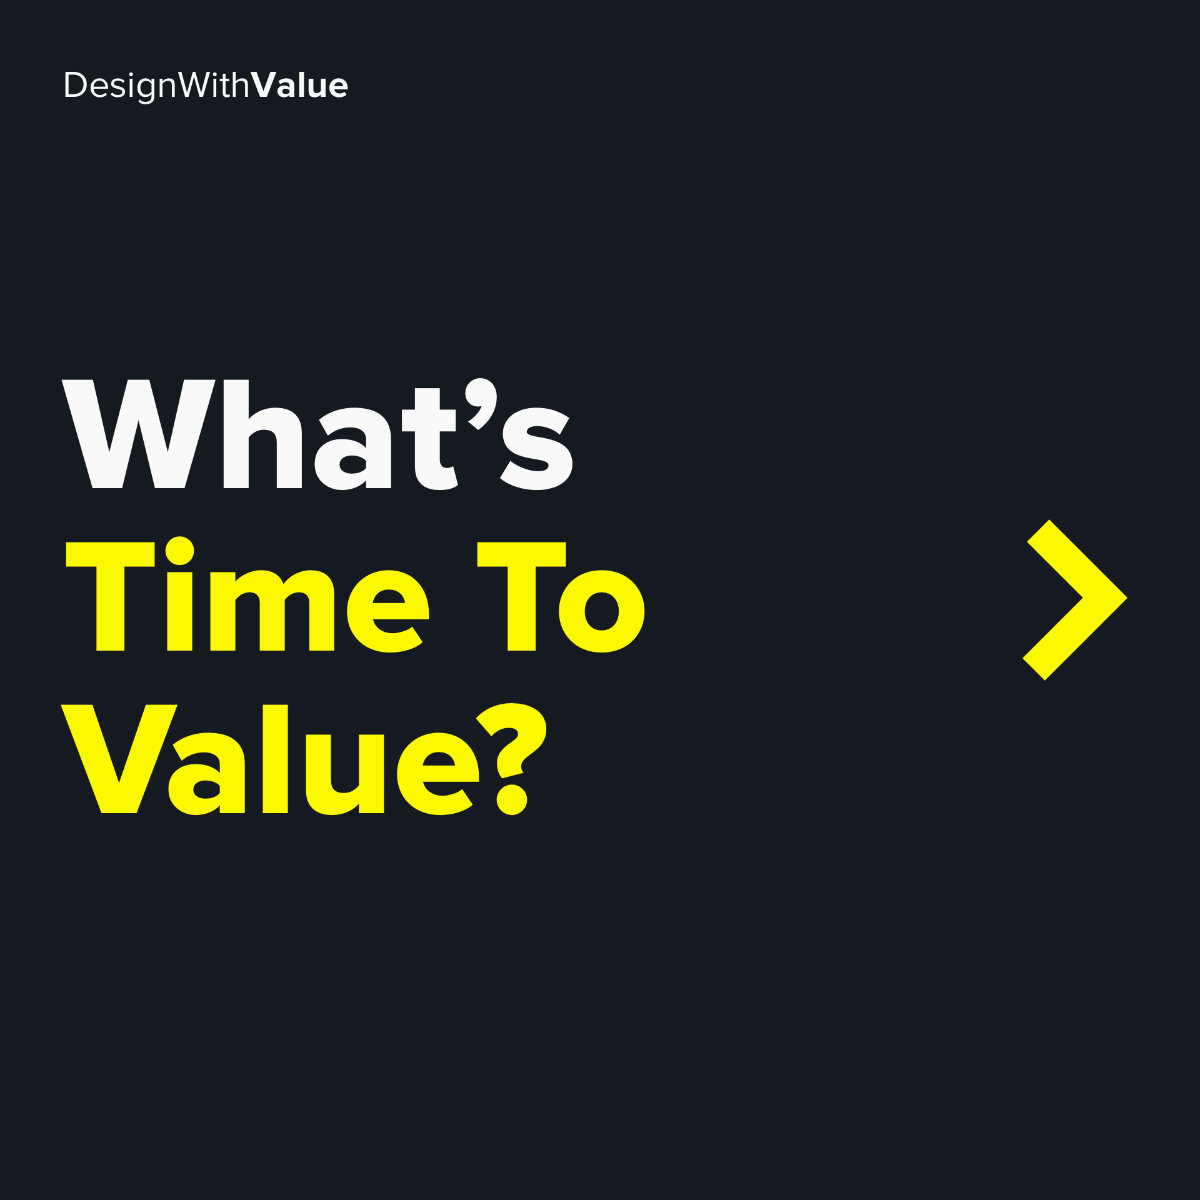 What's time to value?